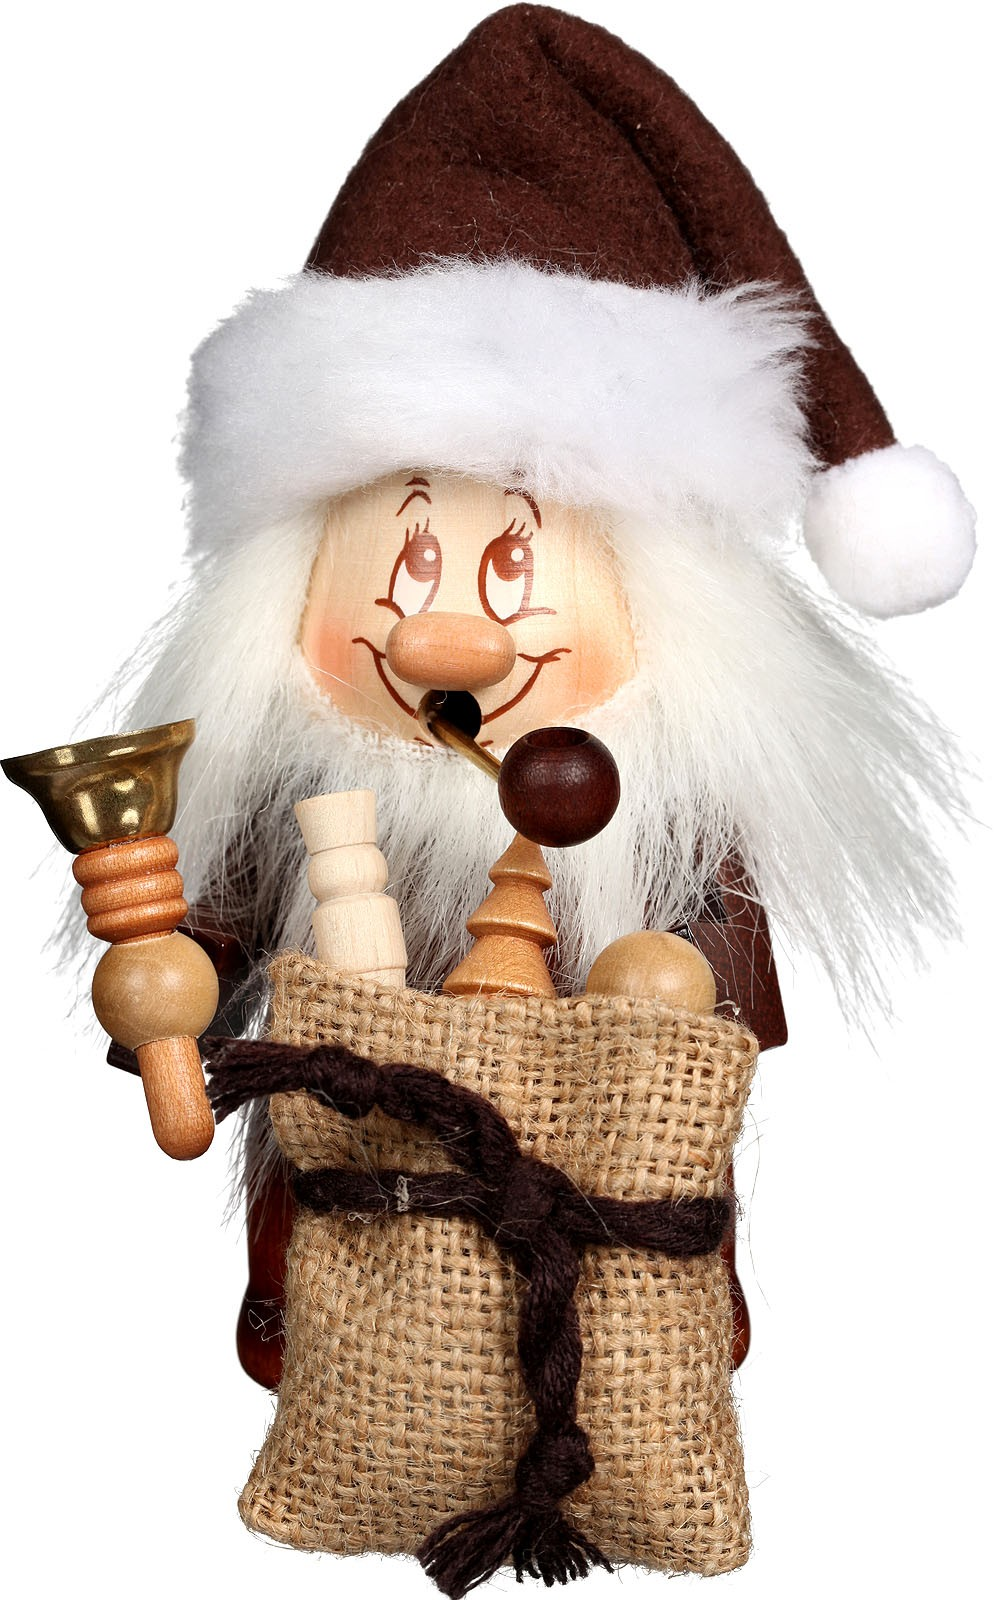 incense smoker, mini imp Santa Claus with bell